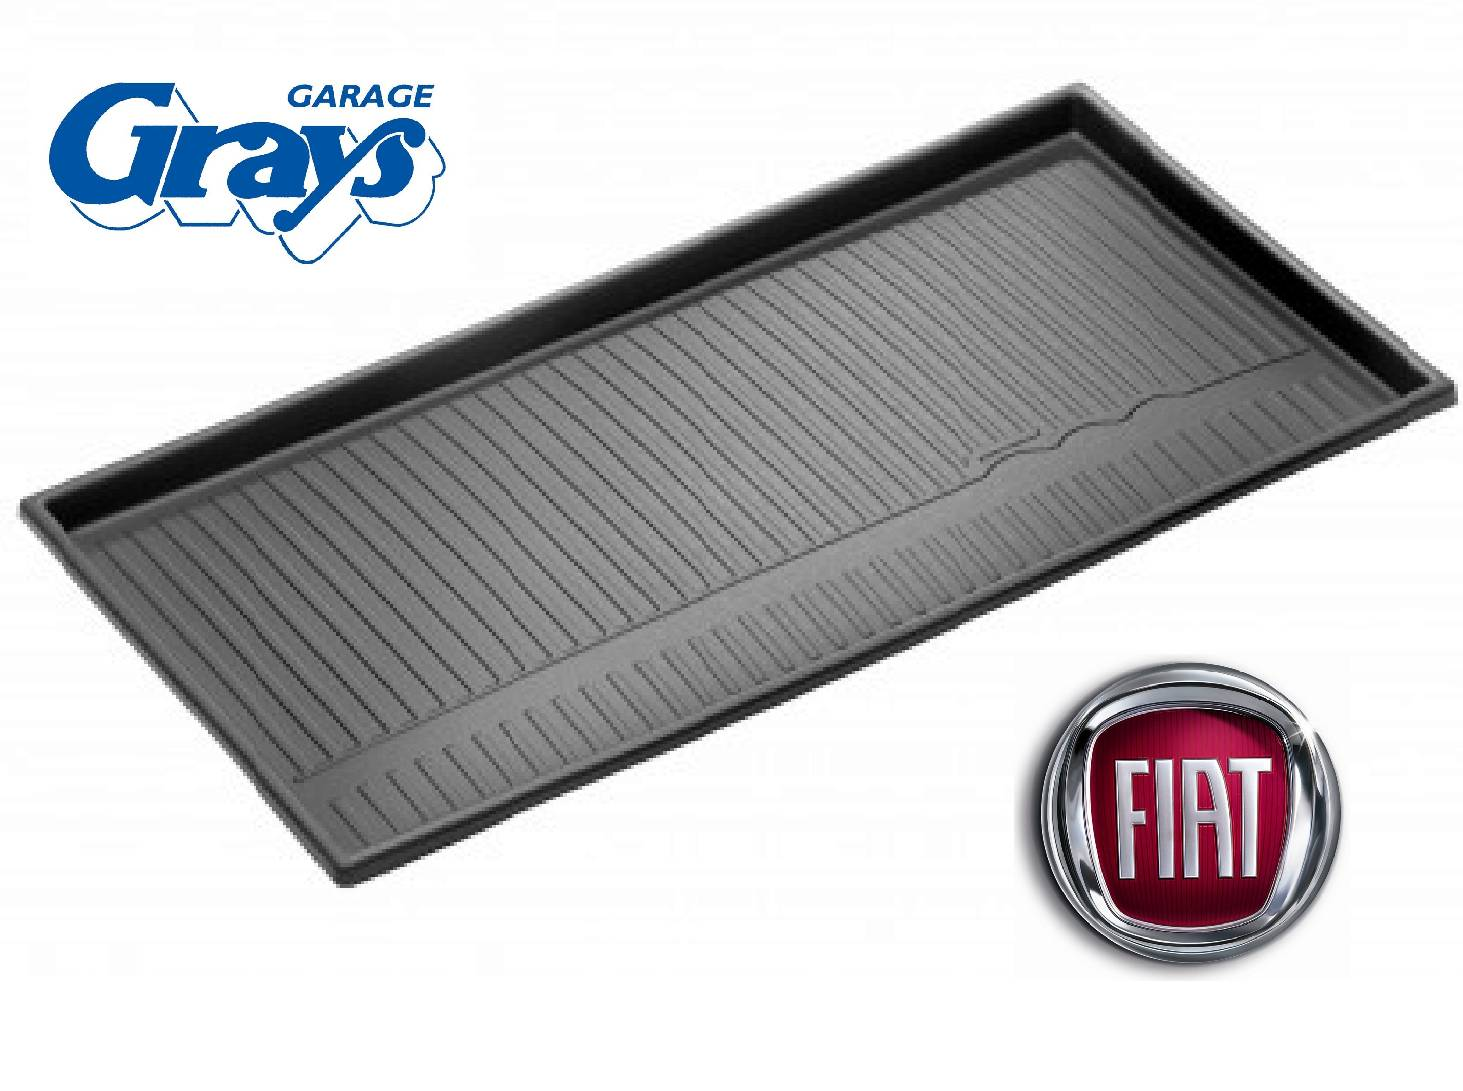 Fiat Boot Liner | Fiat Boot Protection